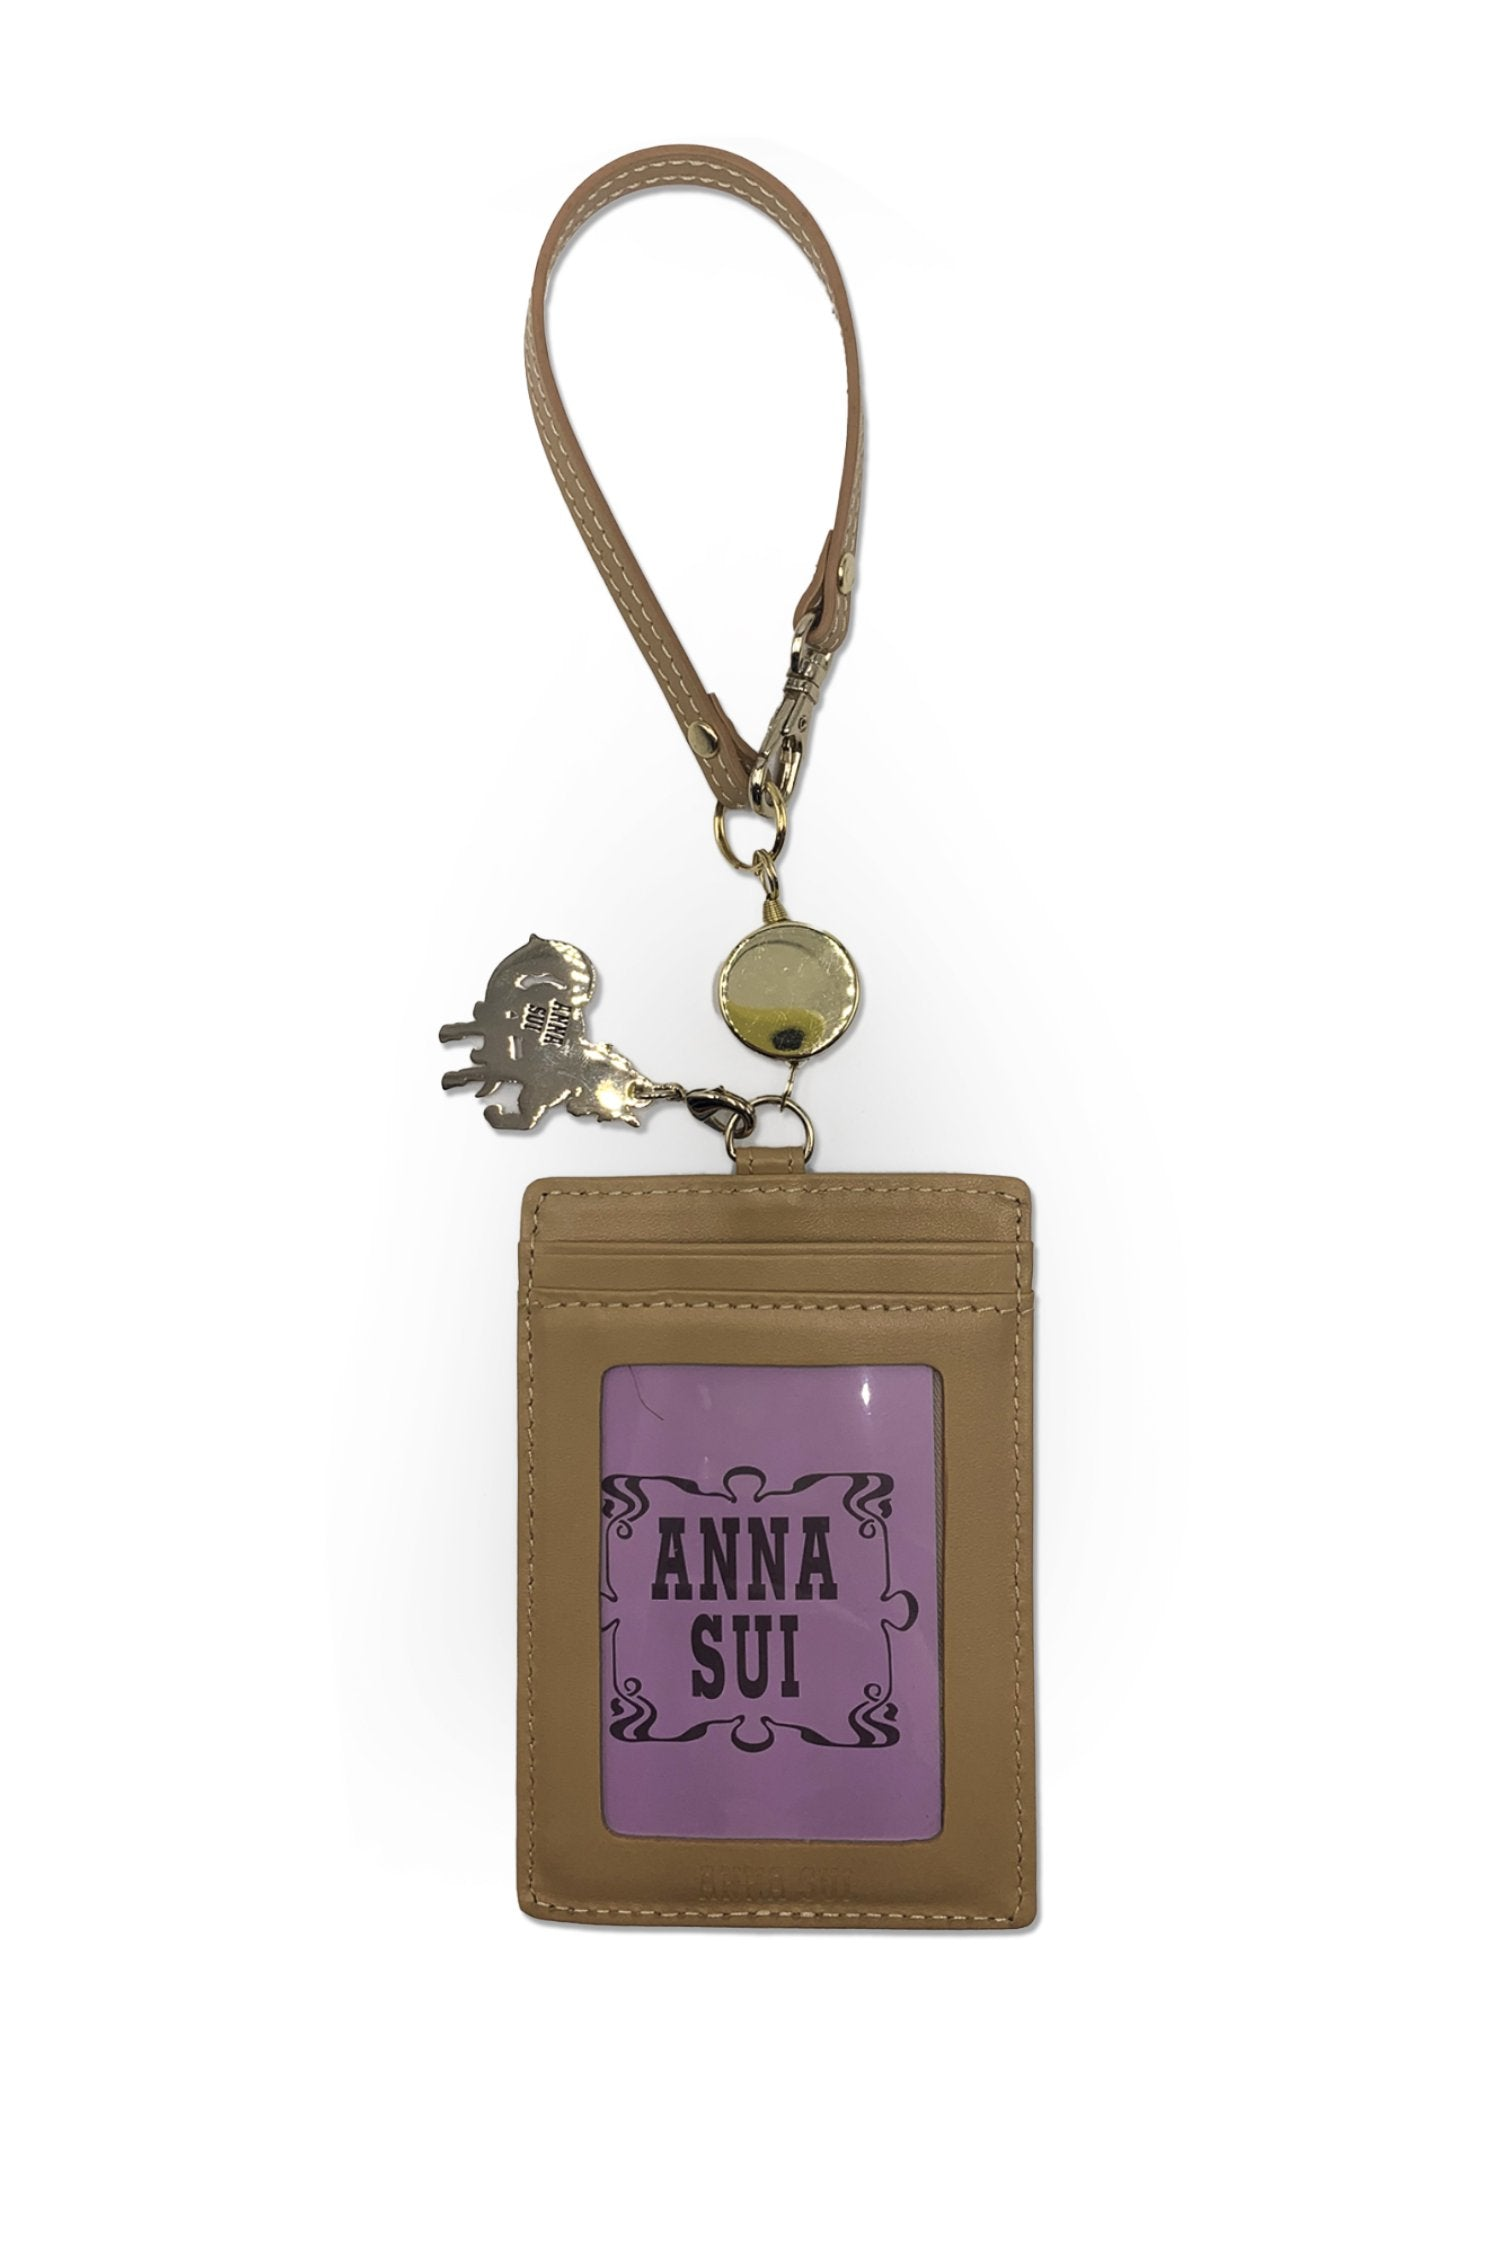 Baby Blue Embossed Card Case with Unicorn Charm - Anna Sui